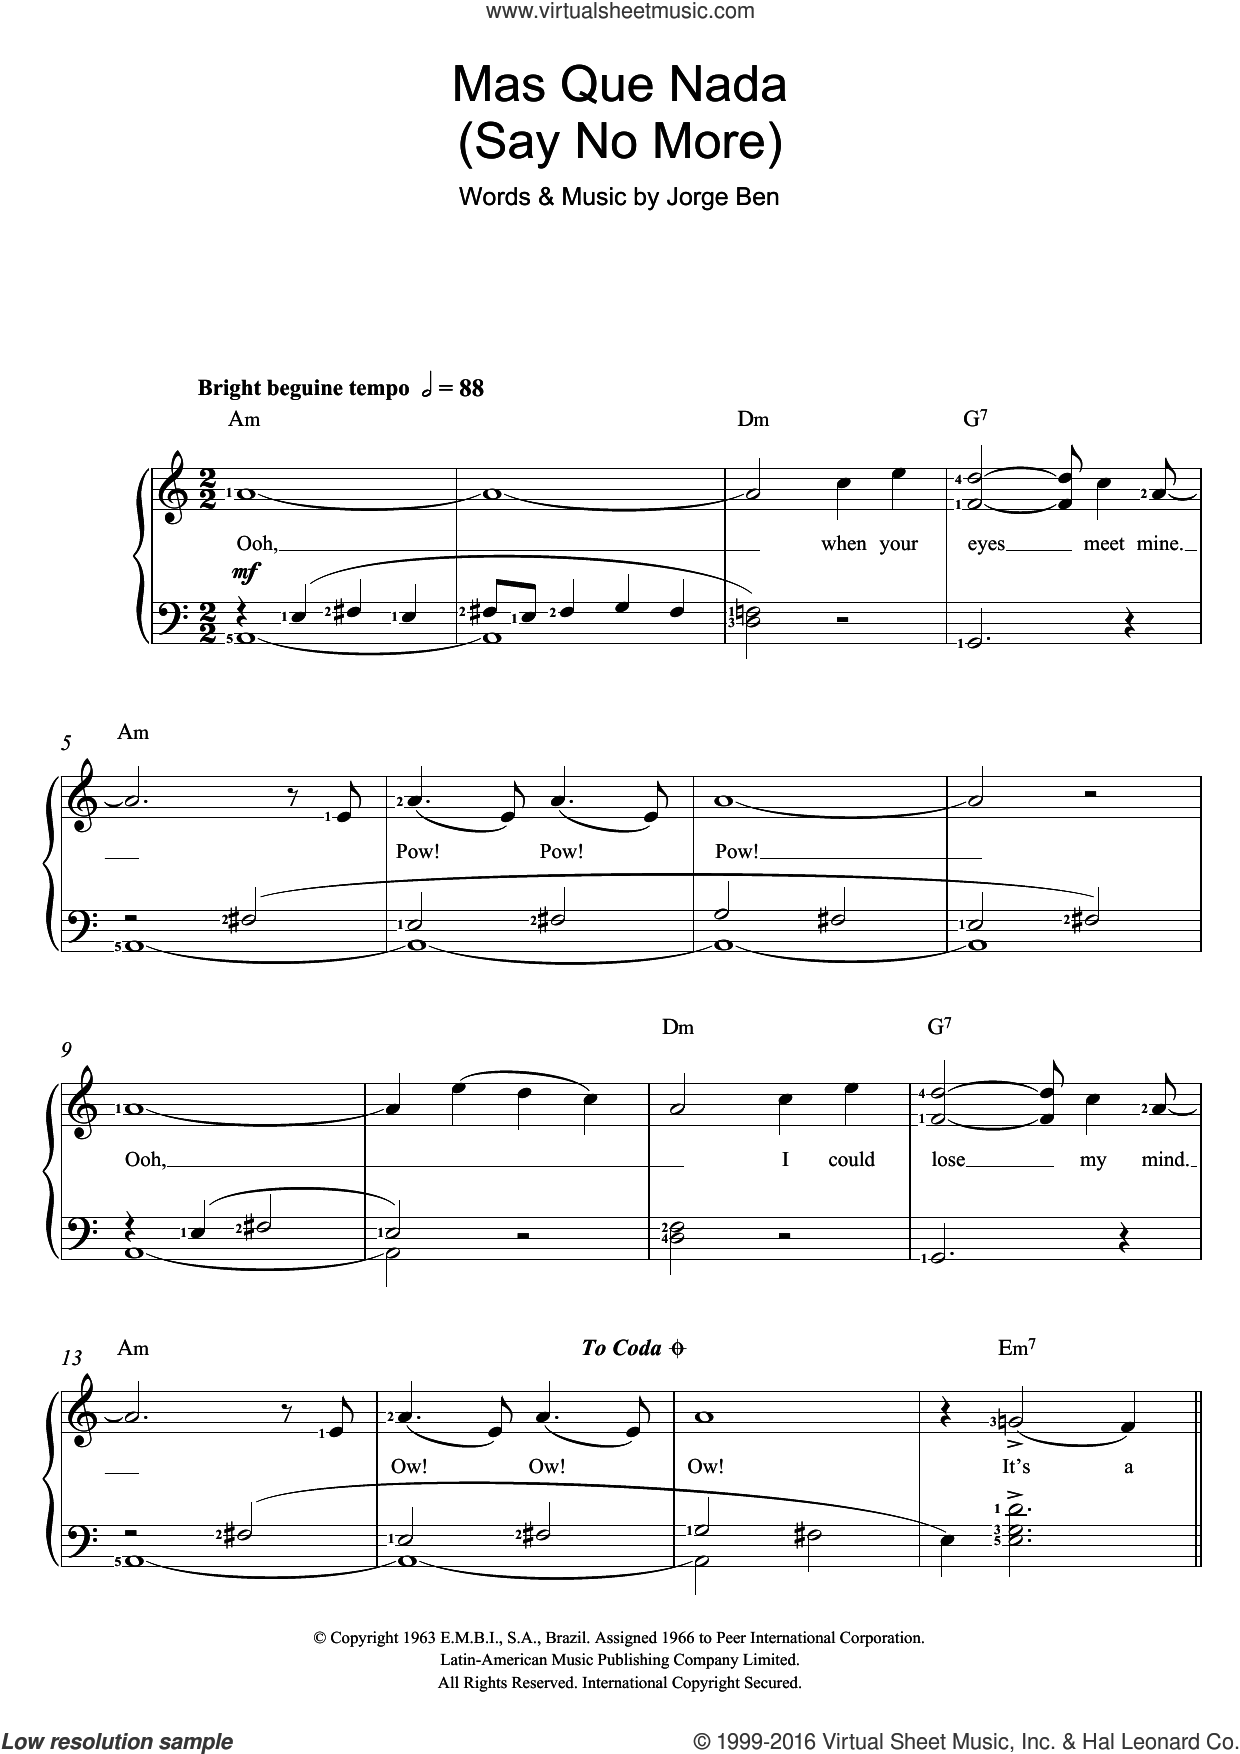 Mas Que Nada (Say No More) sheet music for voice, piano or guitar by Jorge Ben. Score Image Preview.